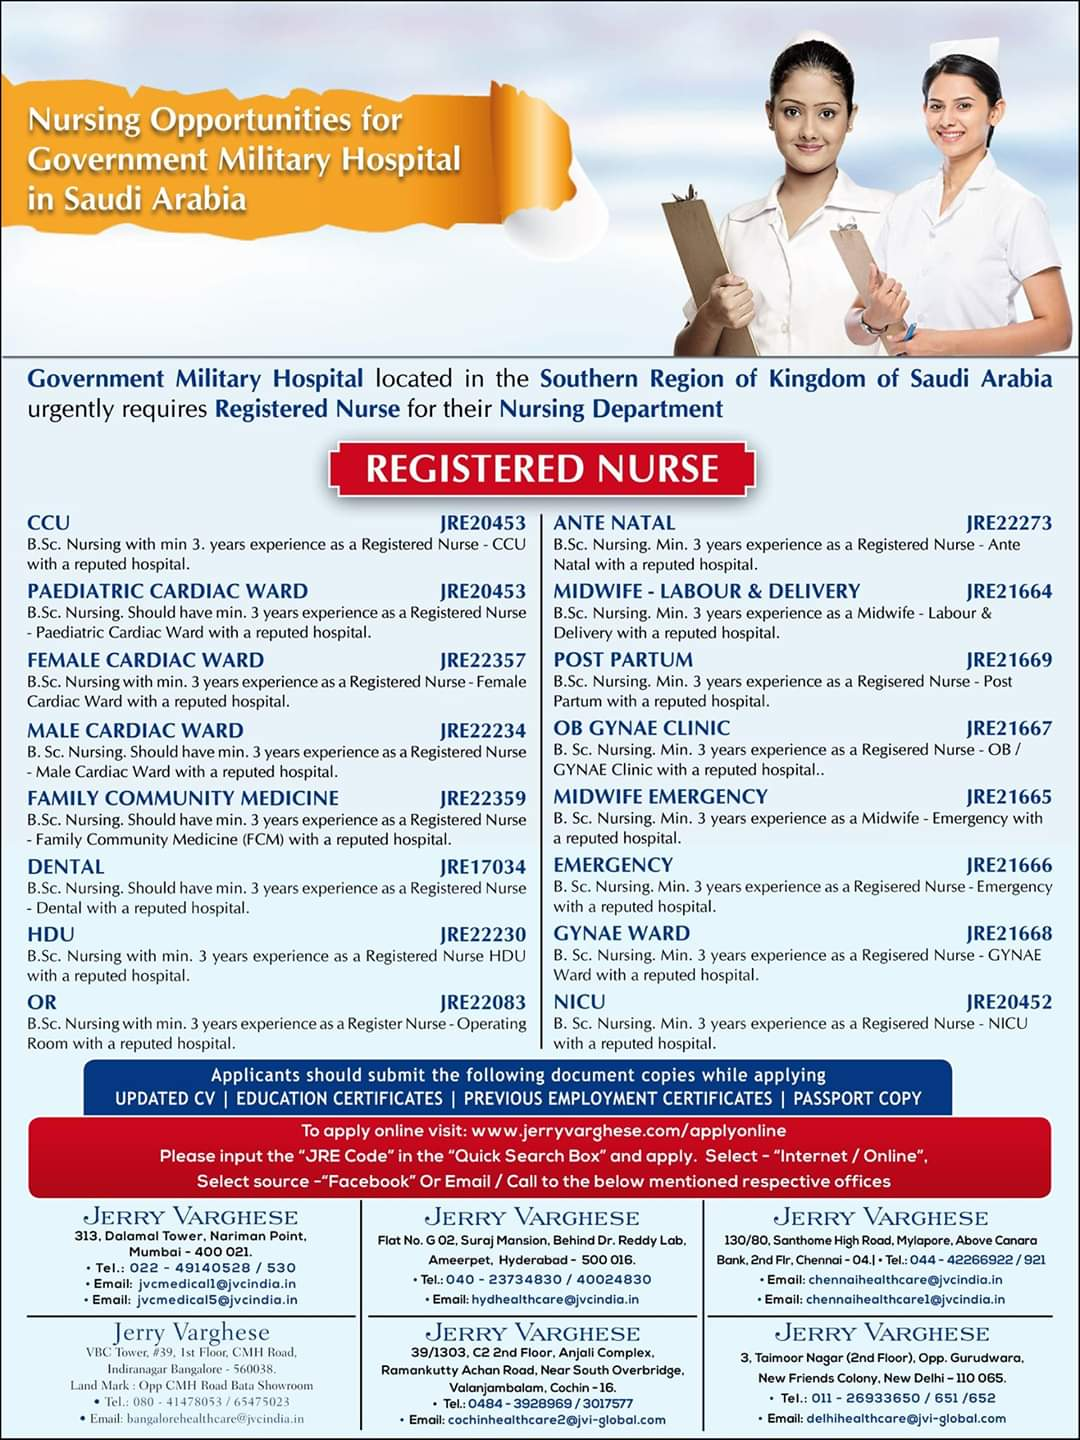 LARGE NURSING OPPORTUNITIES FOR GOVERNMENT MILITARY HOSPITAL IN SAUDI ARABIA